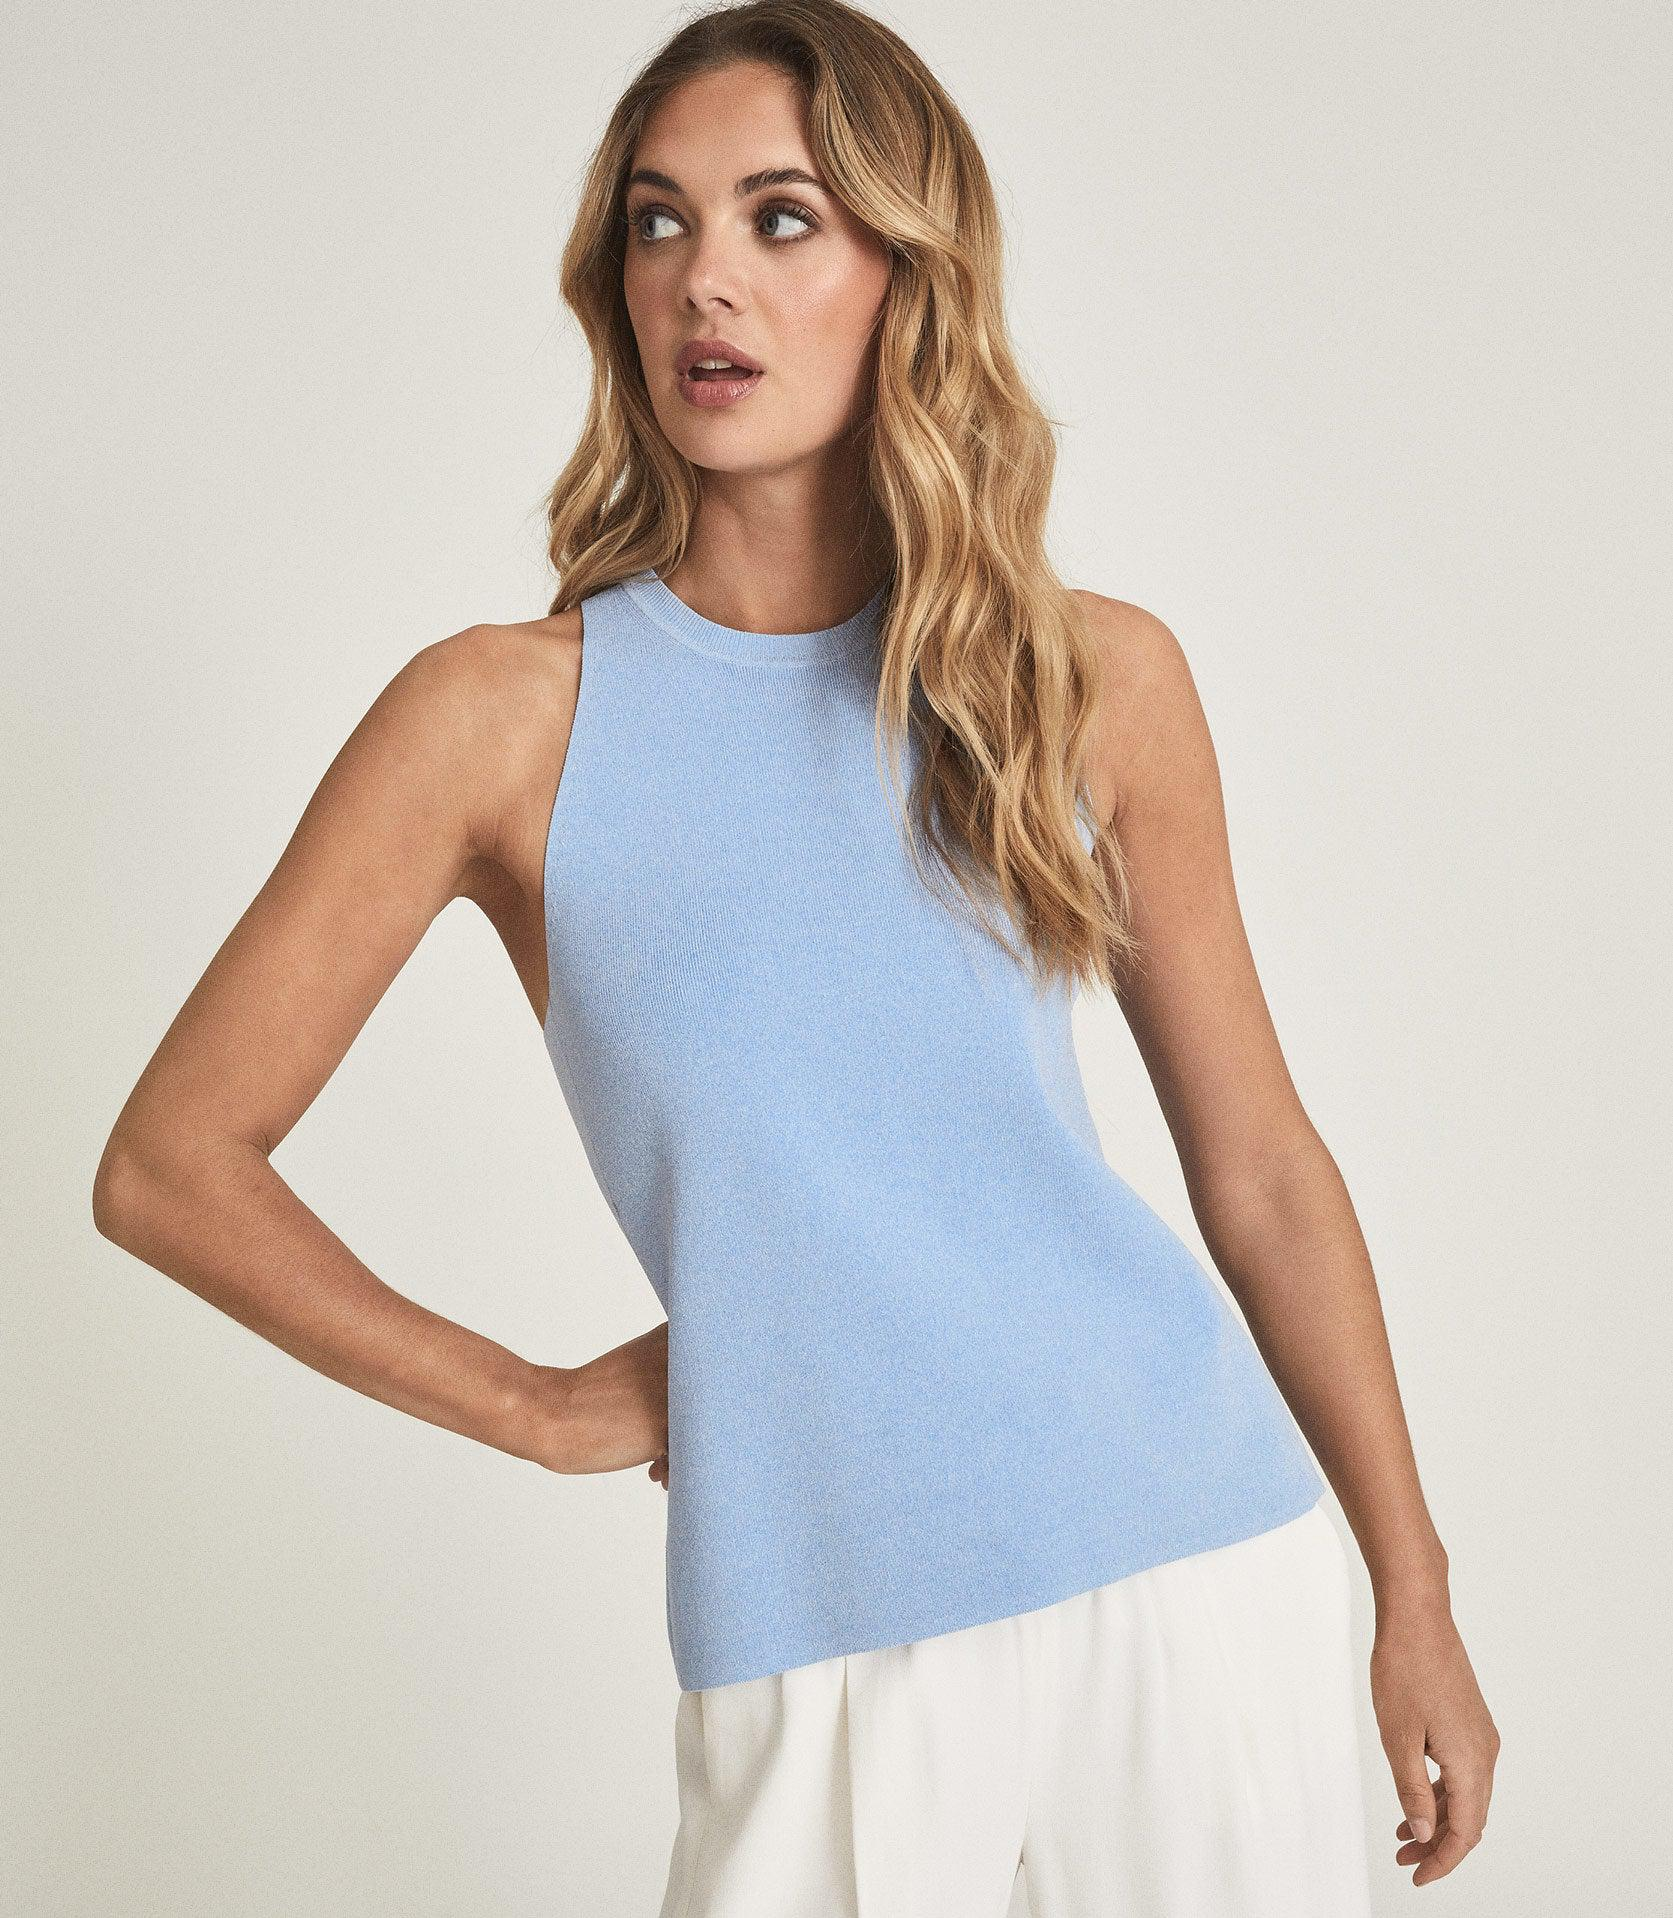 HEIDI - KNITTED OPEN BACK TOP 2